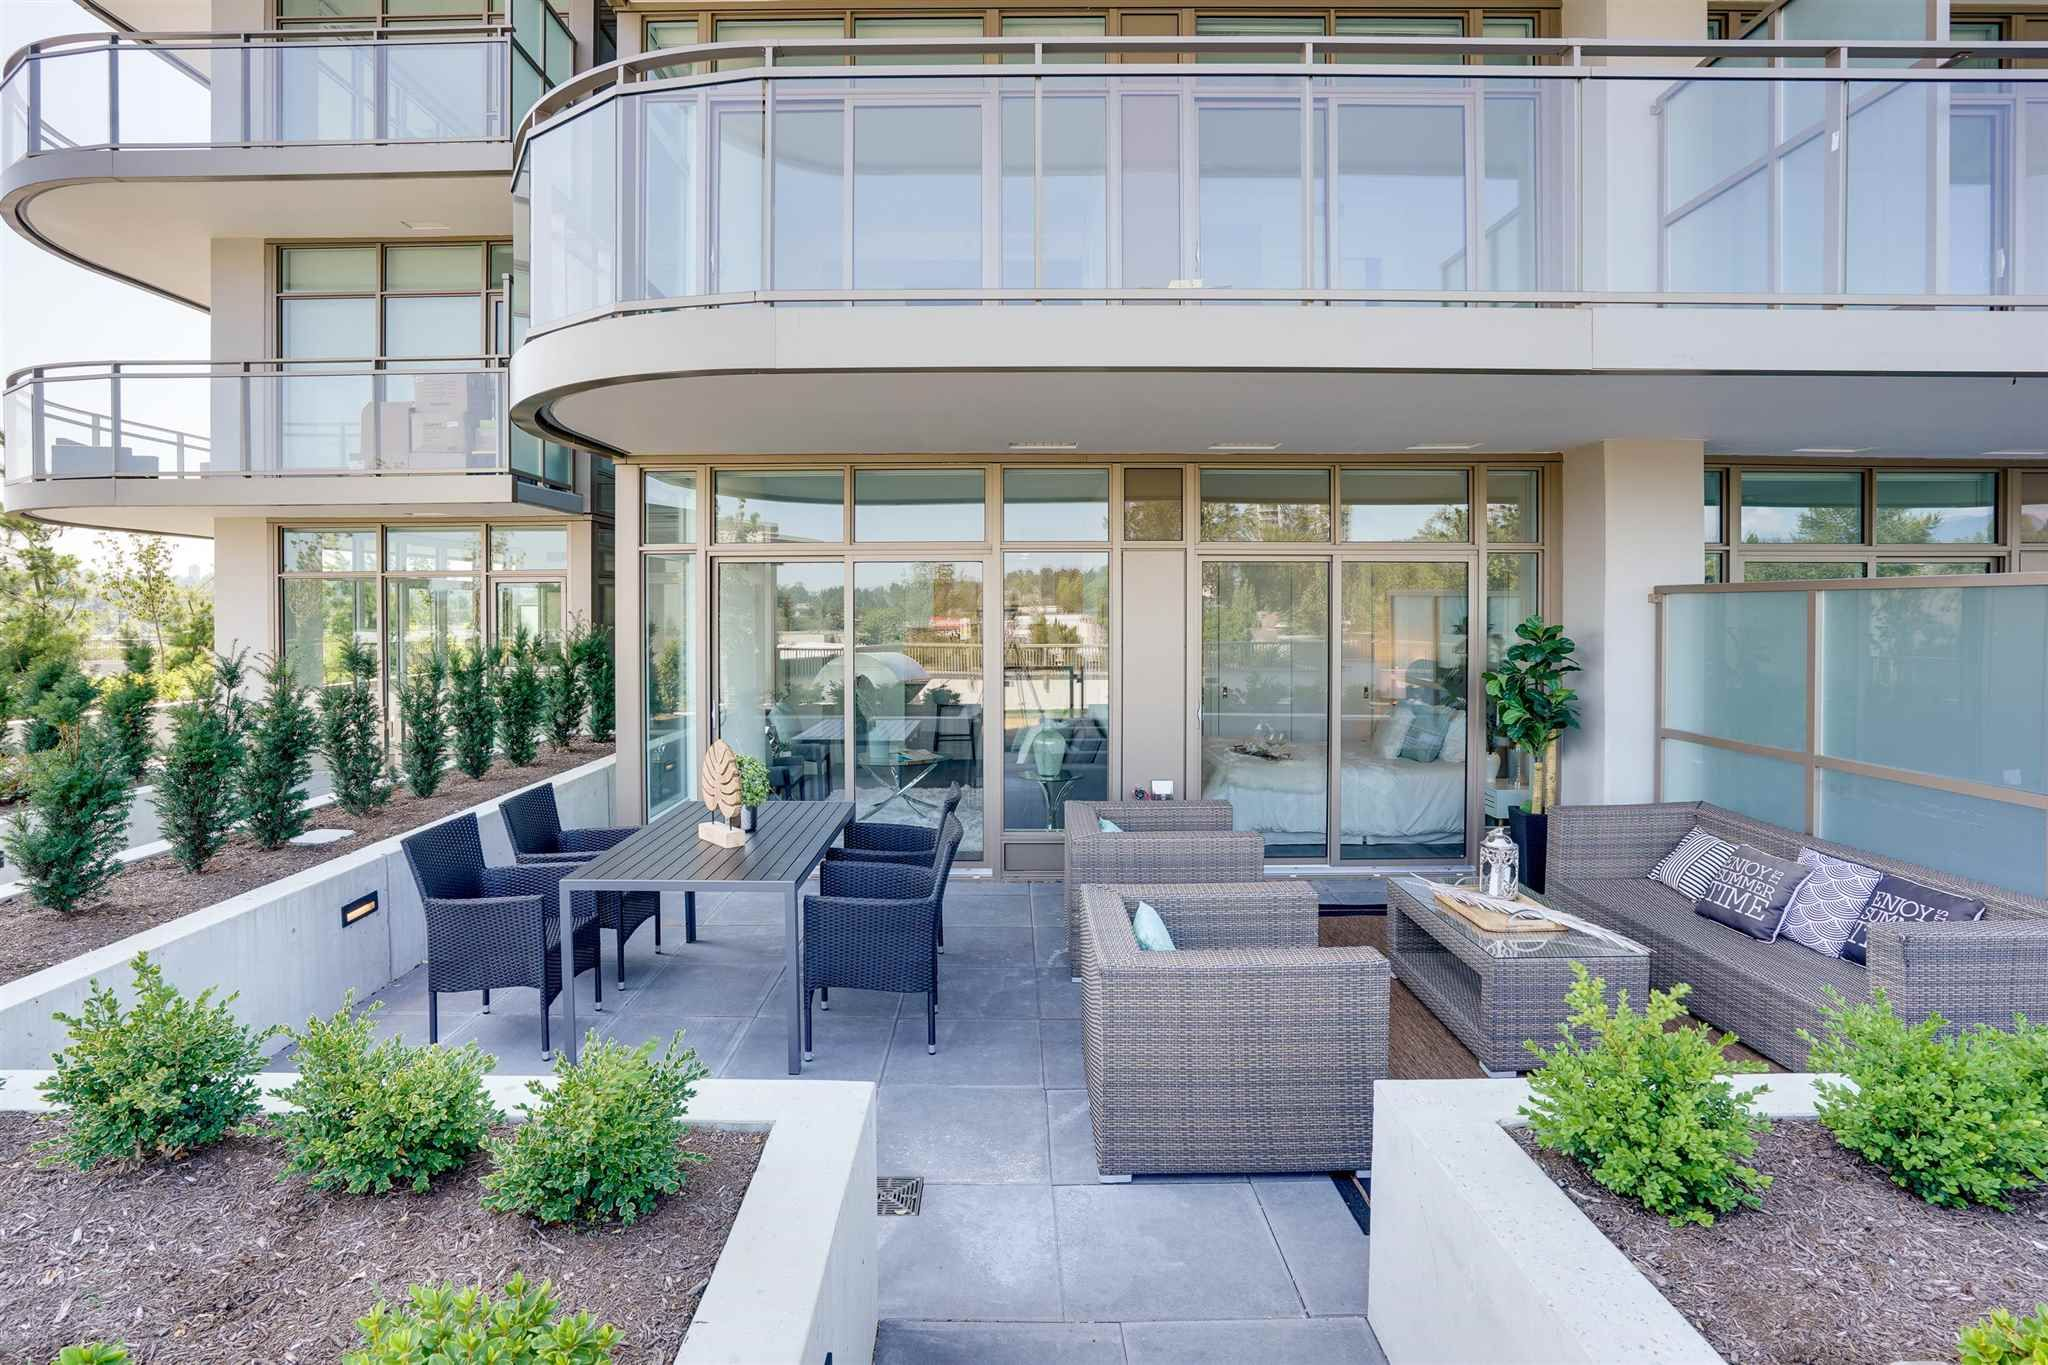 """Main Photo: 403 5333 GORING Street in Burnaby: Brentwood Park Condo for sale in """"ETOILE 1"""" (Burnaby North)  : MLS®# R2602248"""